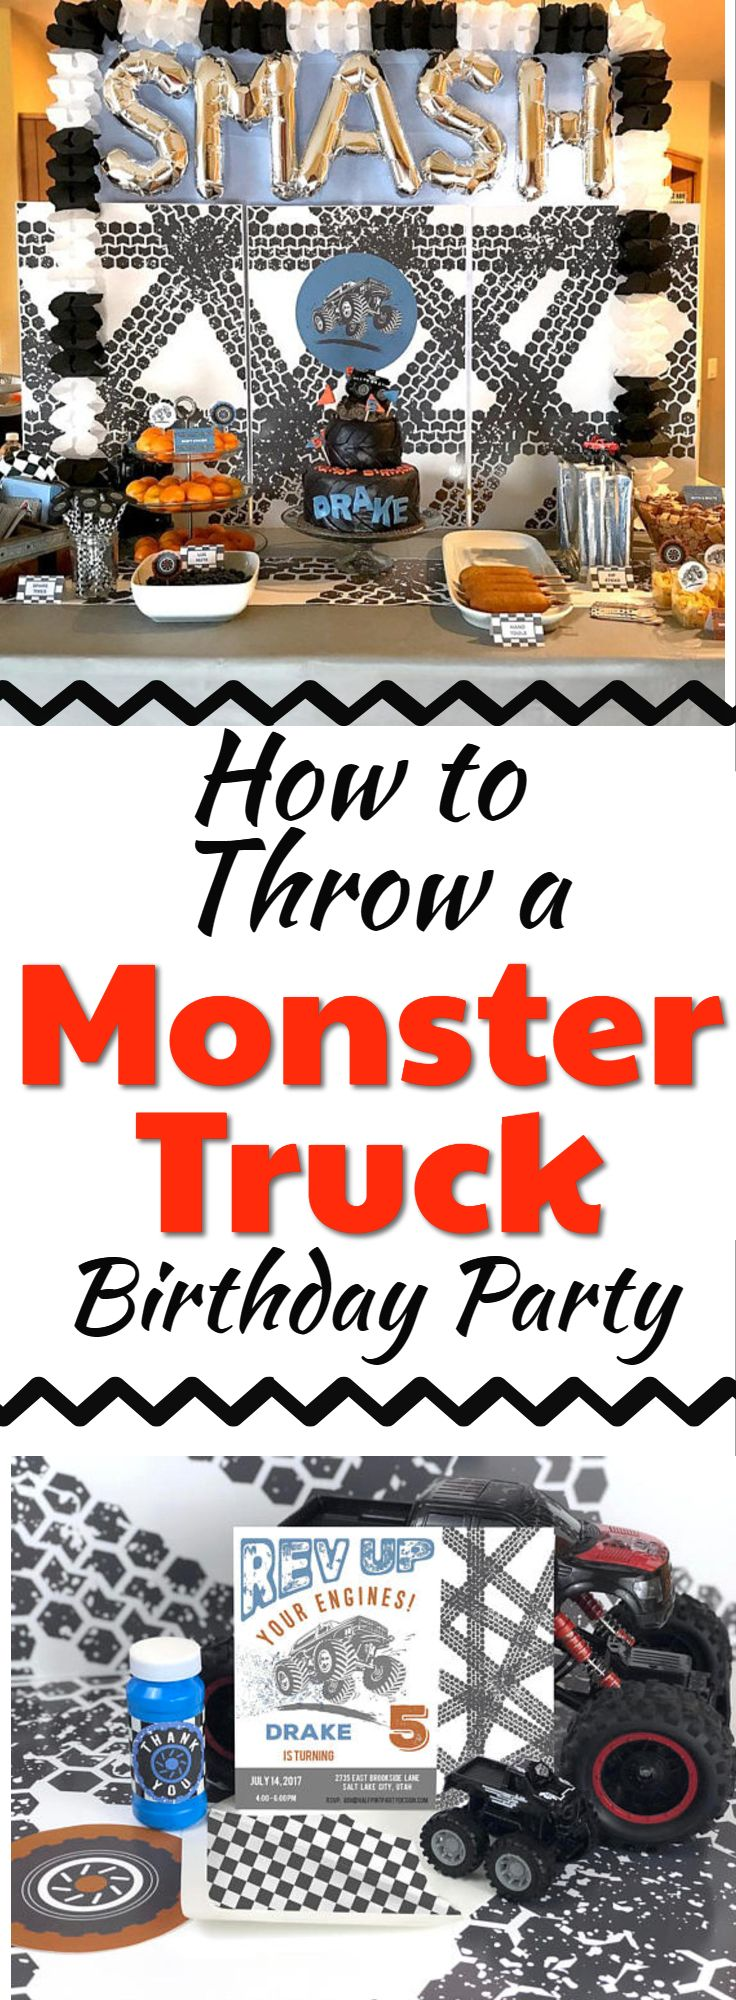 What a fun monster truck party this will be! Everything is here to host the perfect kid birthday party!  Monster Truck Birthday Party Invitation, Truck party, Boy Birthday theme, Monster Jam Truck Party, Tire Tracks, Truck Invite, Racing Party #monstertruckparty #affiliate #birthdayparty